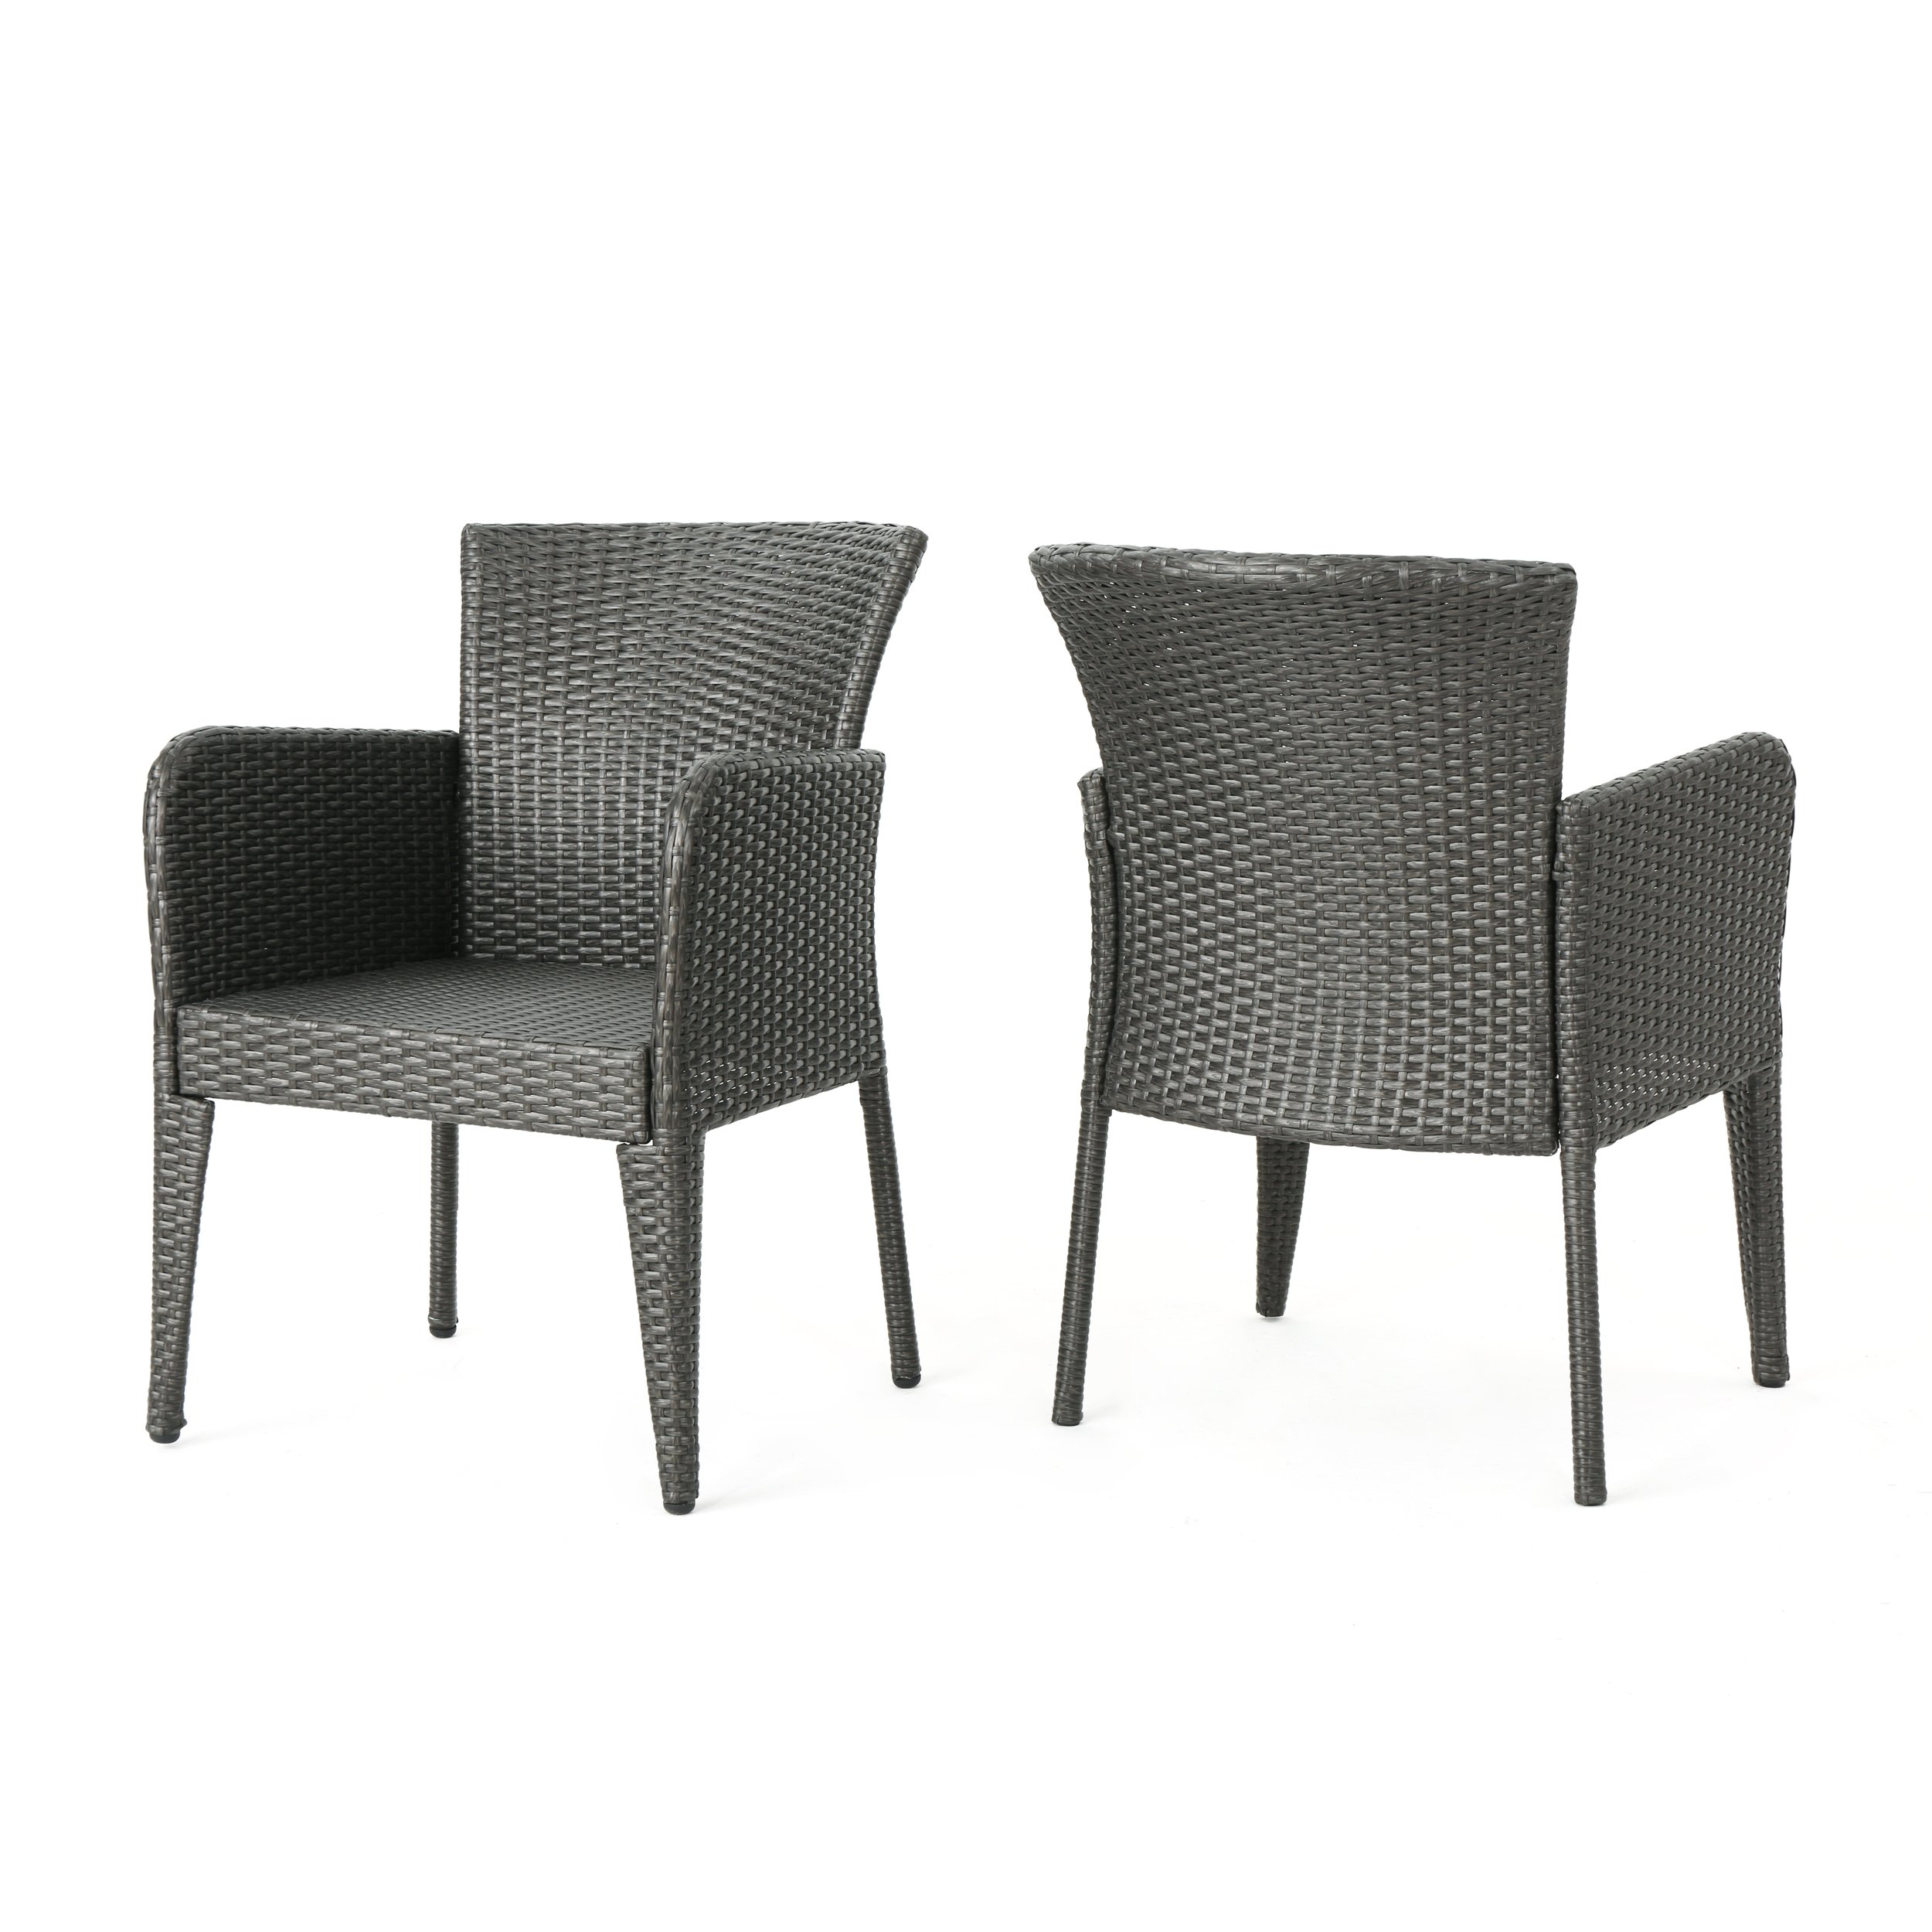 Christopher Knight Home Daisy Outdoor Wicker Dining Chair (Set of 2), Grey